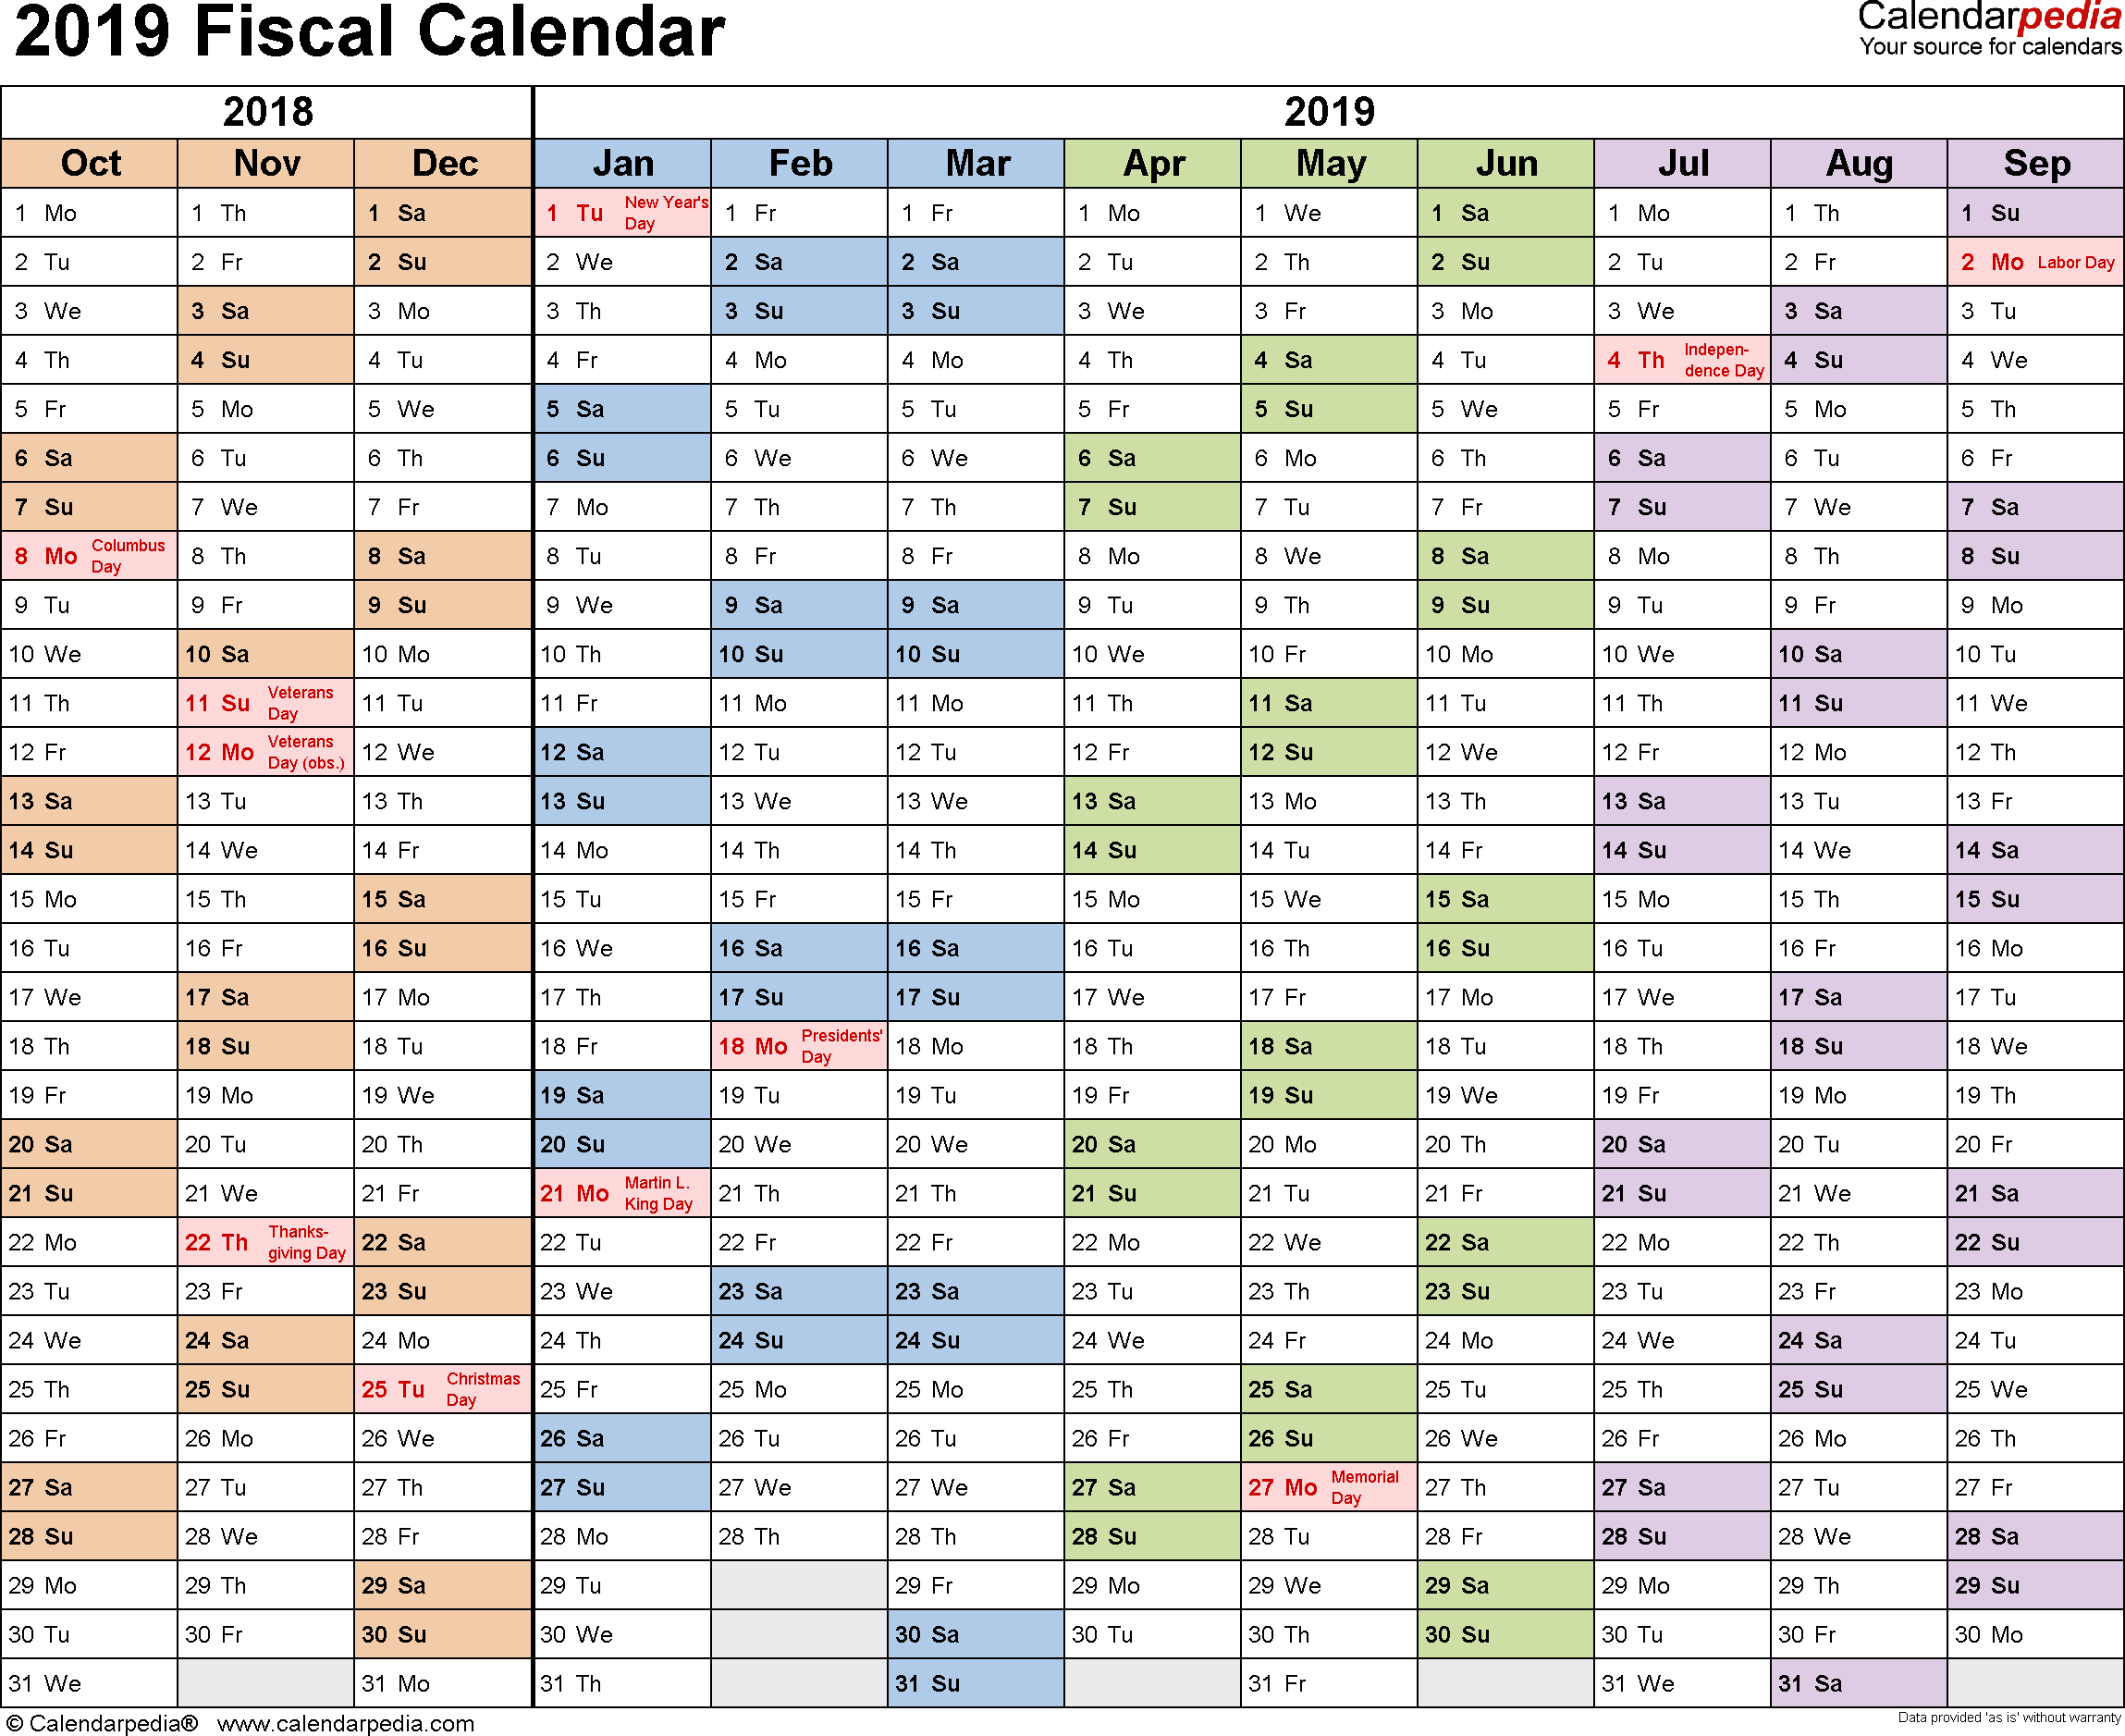 Financial Year Calendar 2019 20 Australia With Fiscal Calendars As Free Printable Word Templates